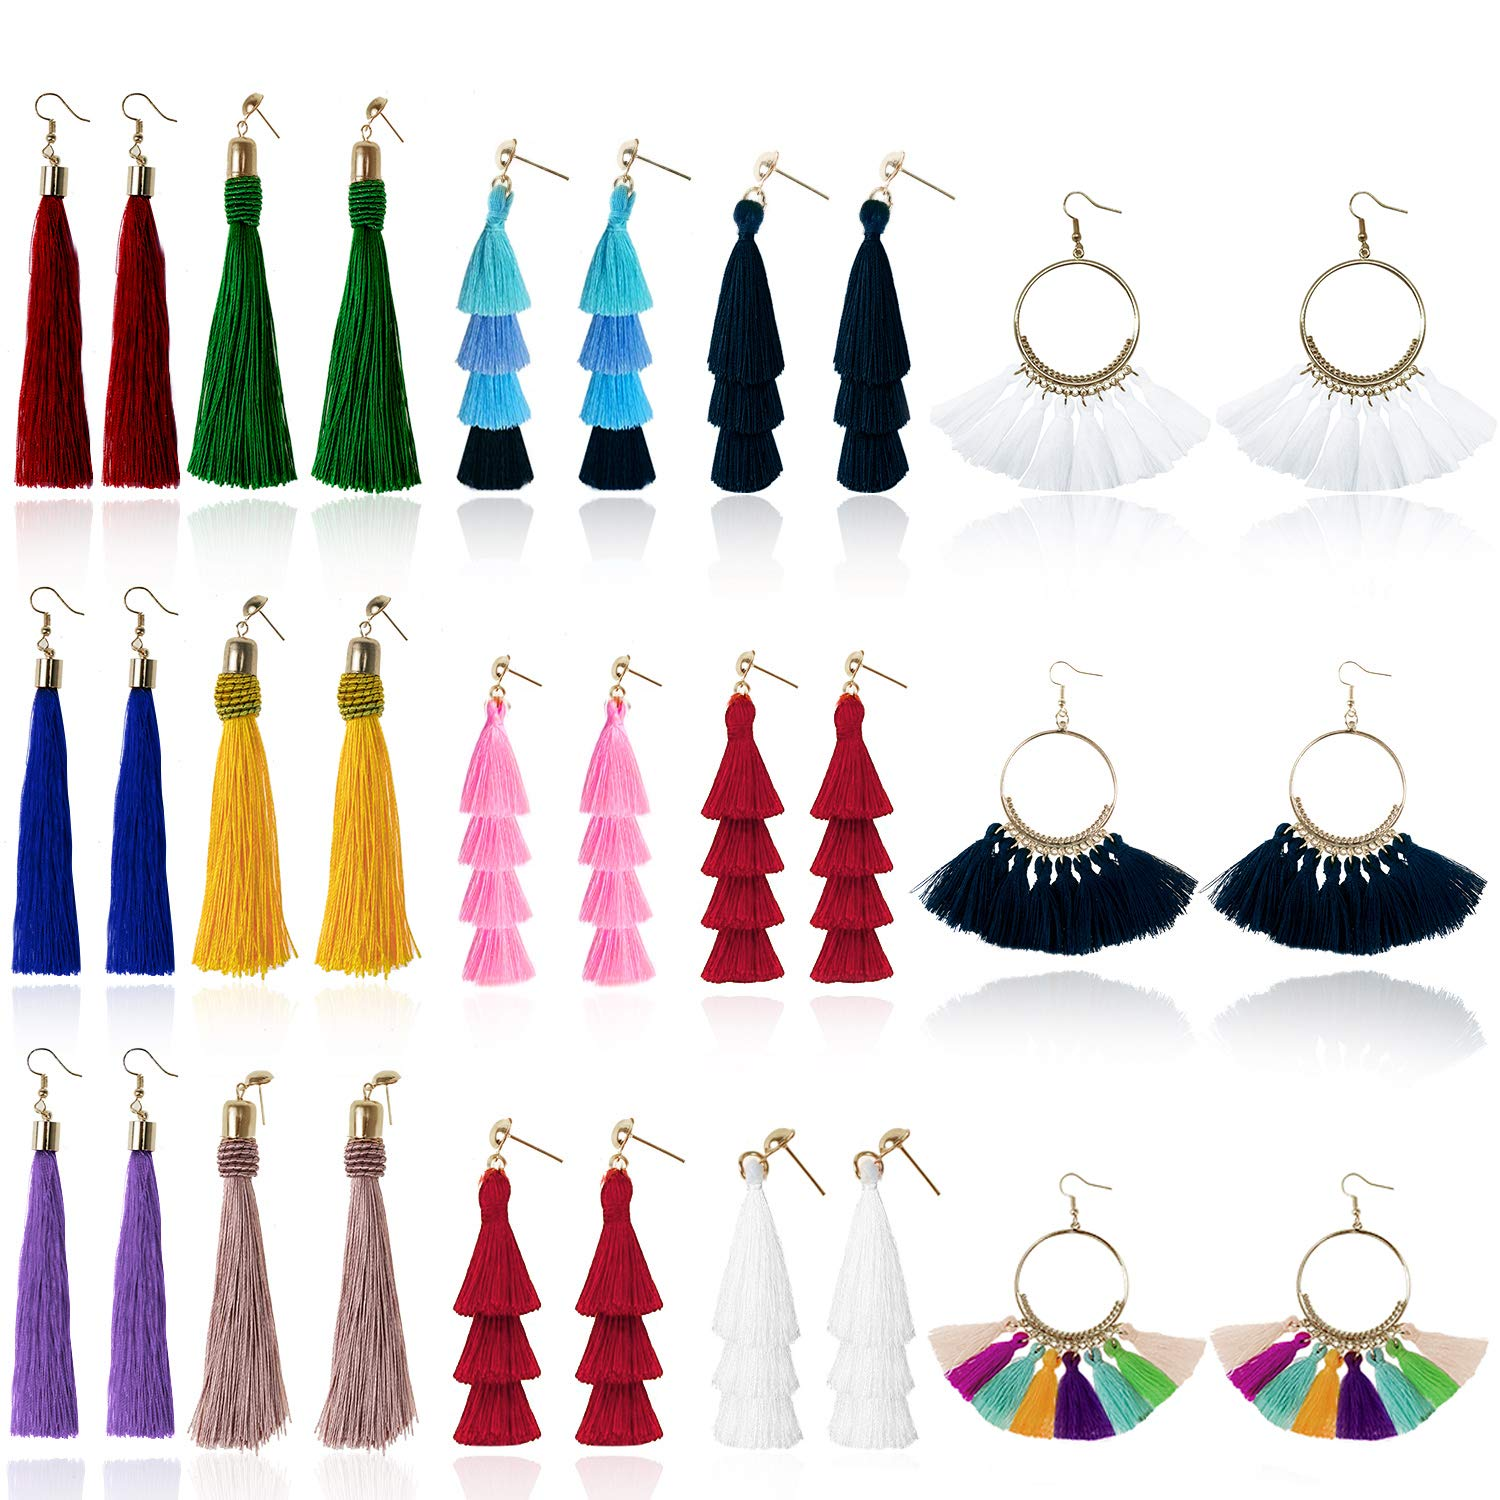 Free Amazon Promo Code 2020 for Tassel Earrings for Women Fashion